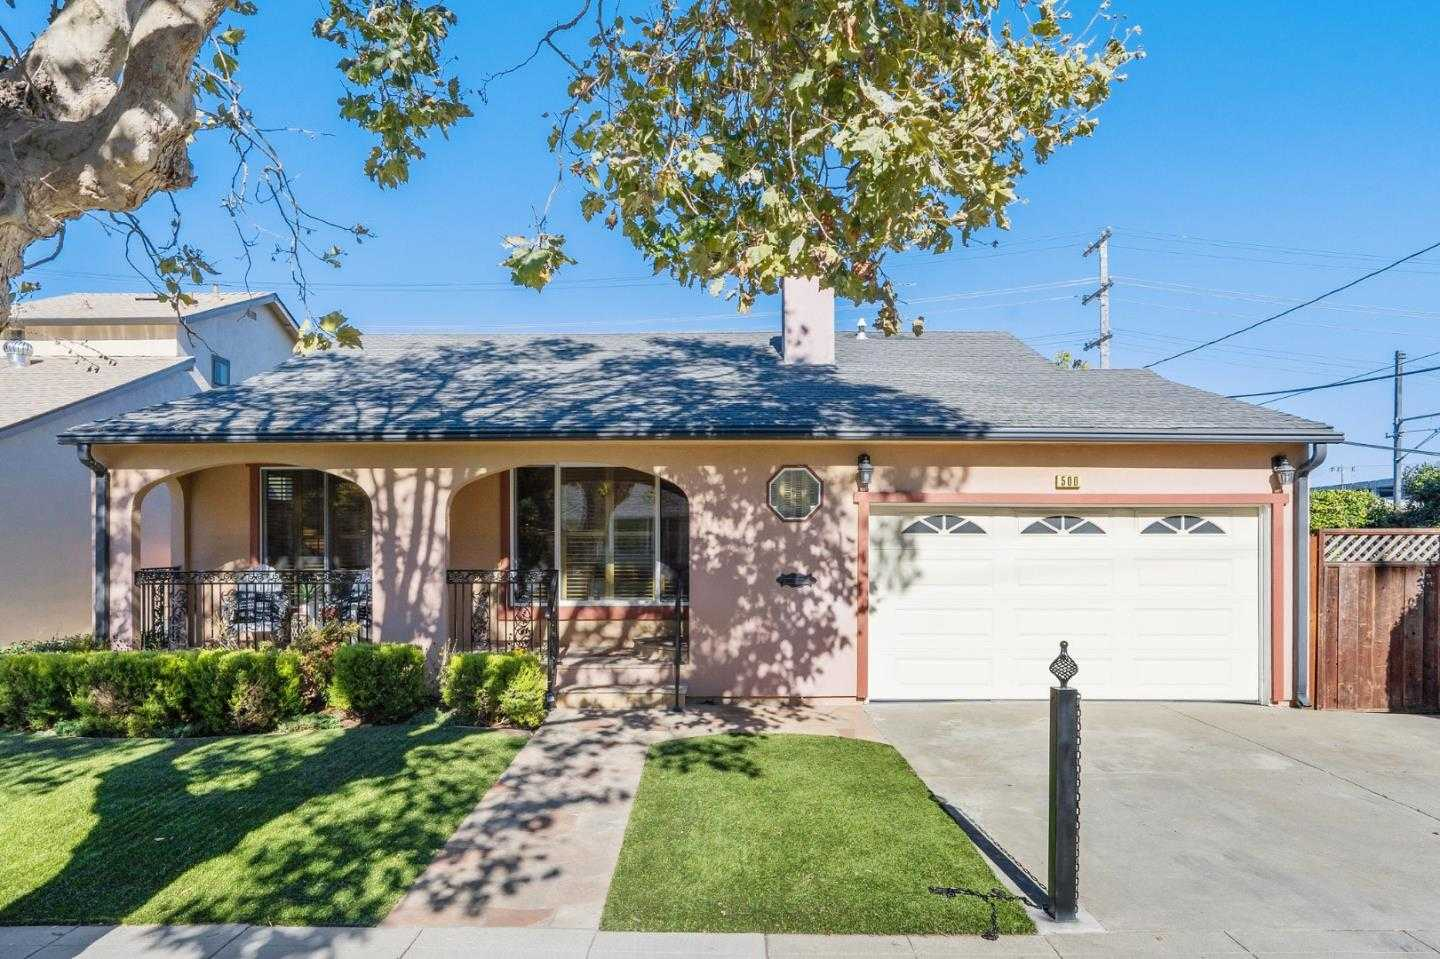 $1,538,000 - 3Br/3Ba -  for Sale in Millbrae